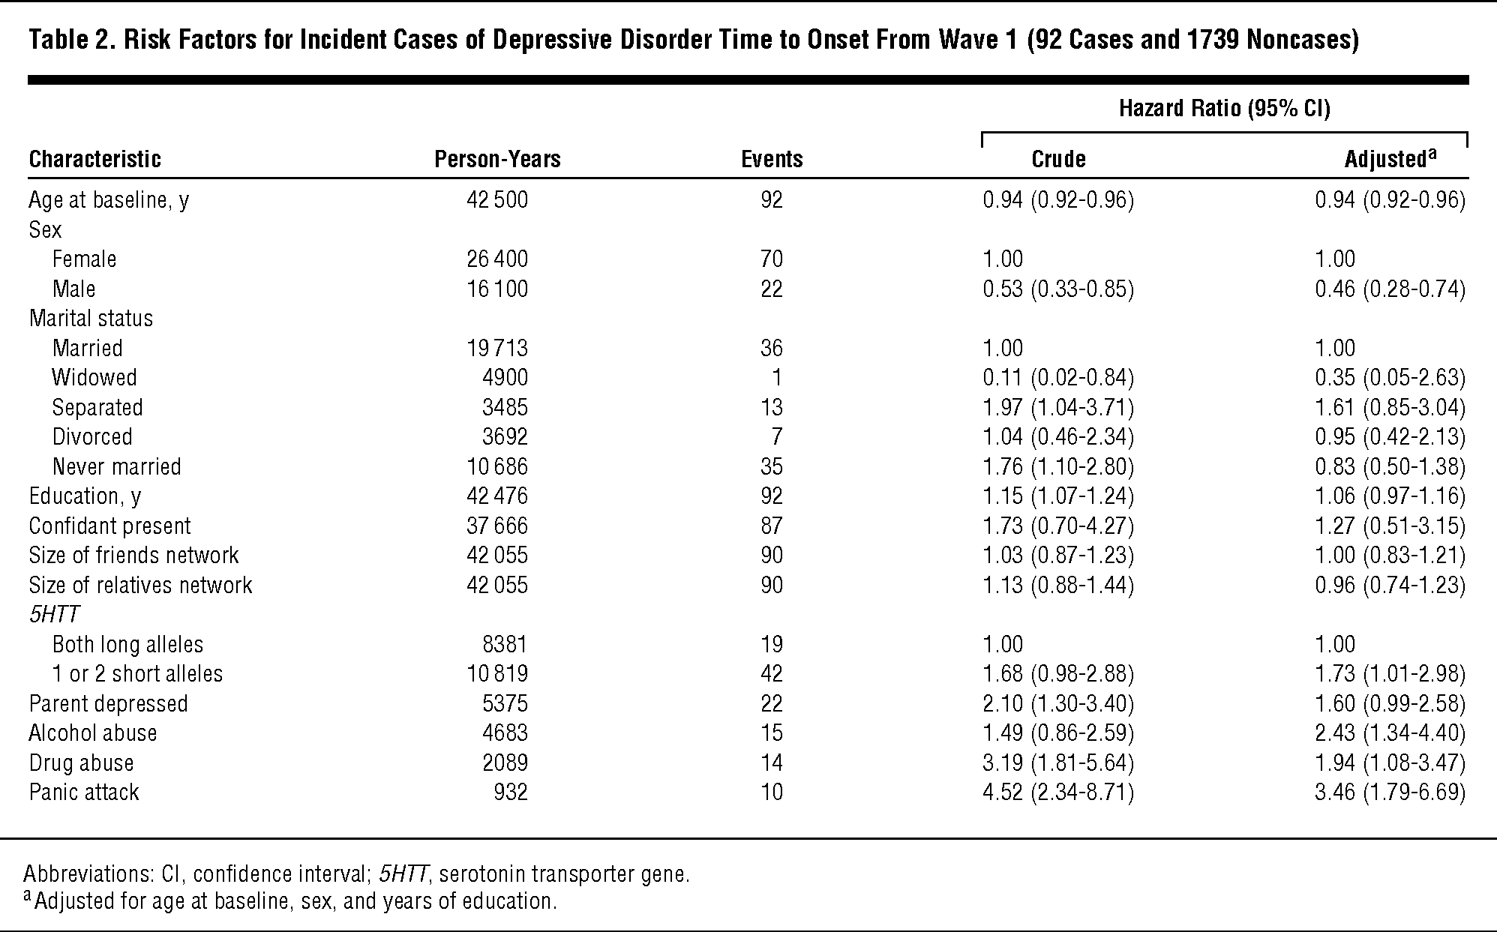 Population-Based Study of First Onset and Chronicity in